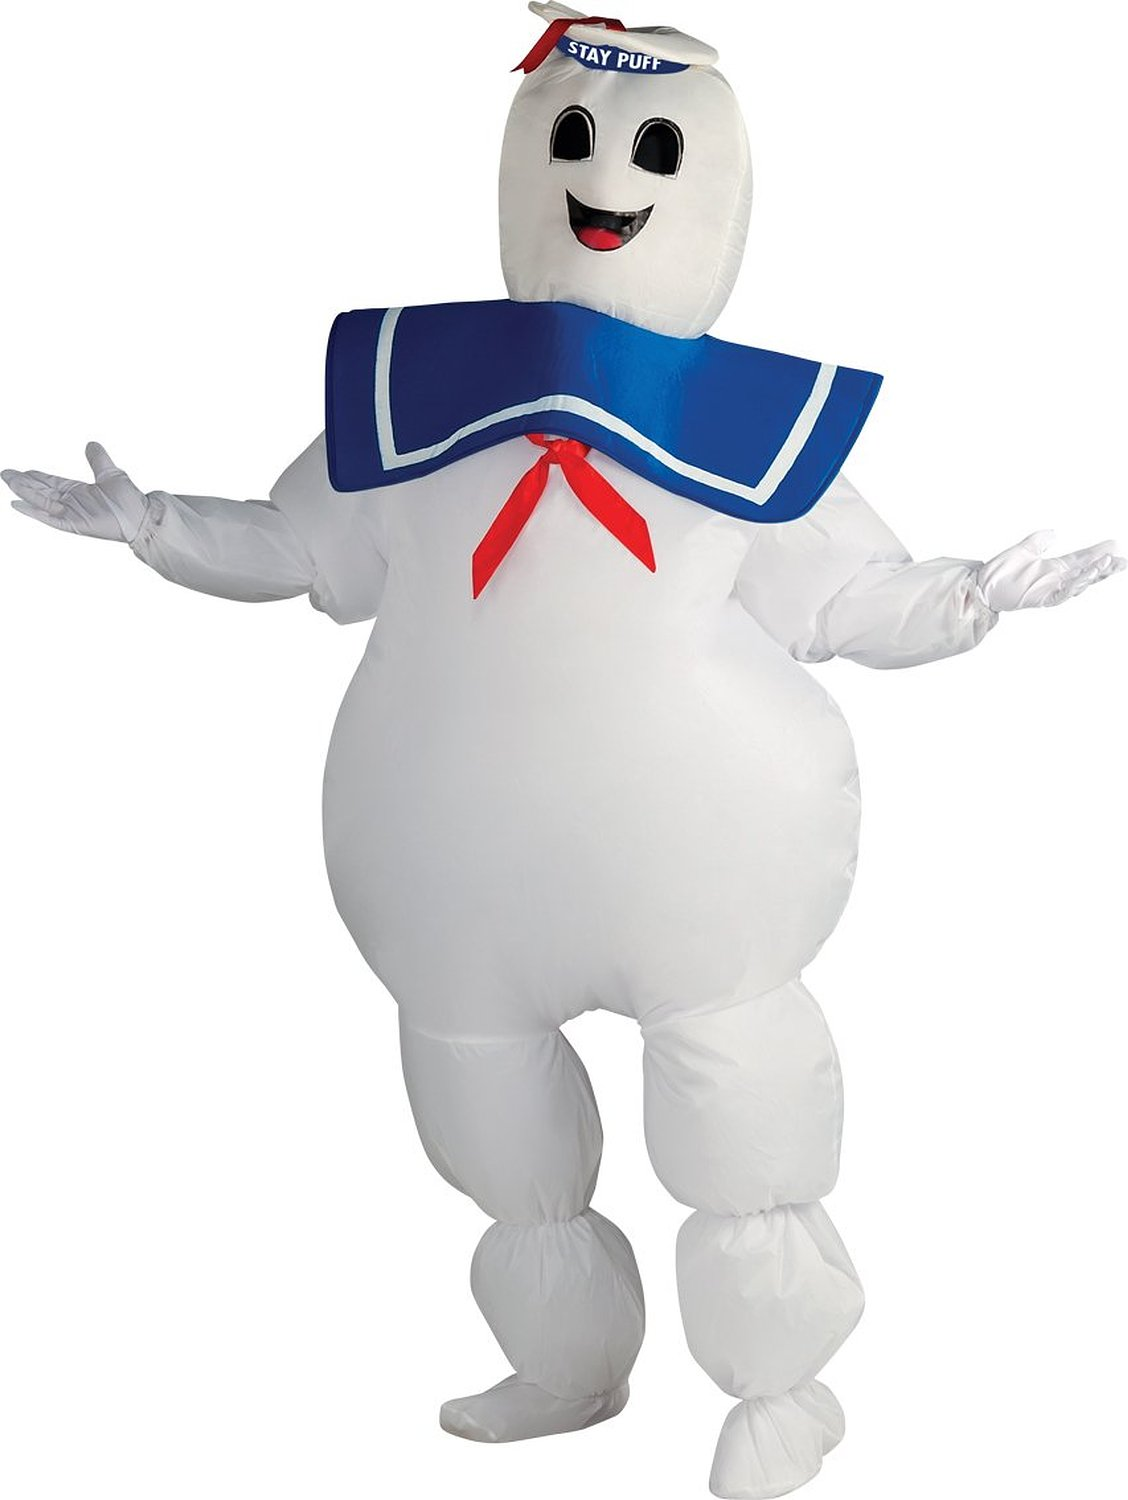 Ghostbusters Inflatable Puft Marshmallow Costume